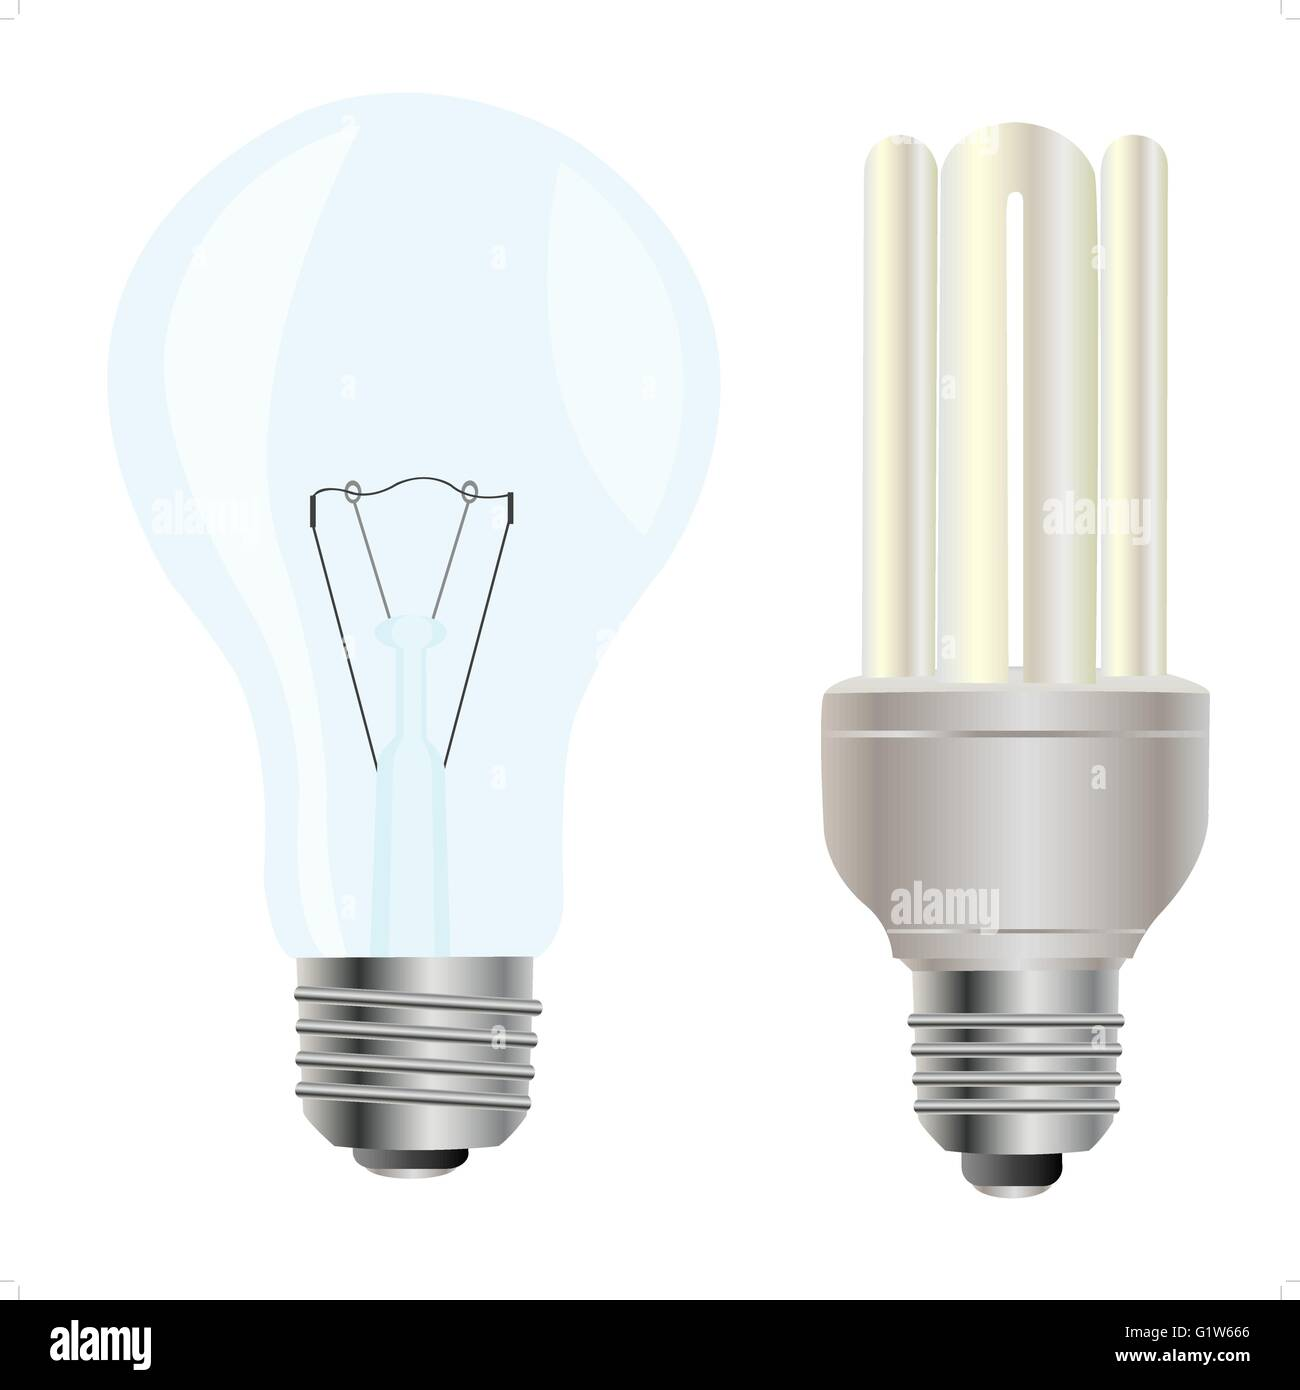 Electric light bulbs on white background - Stock Image